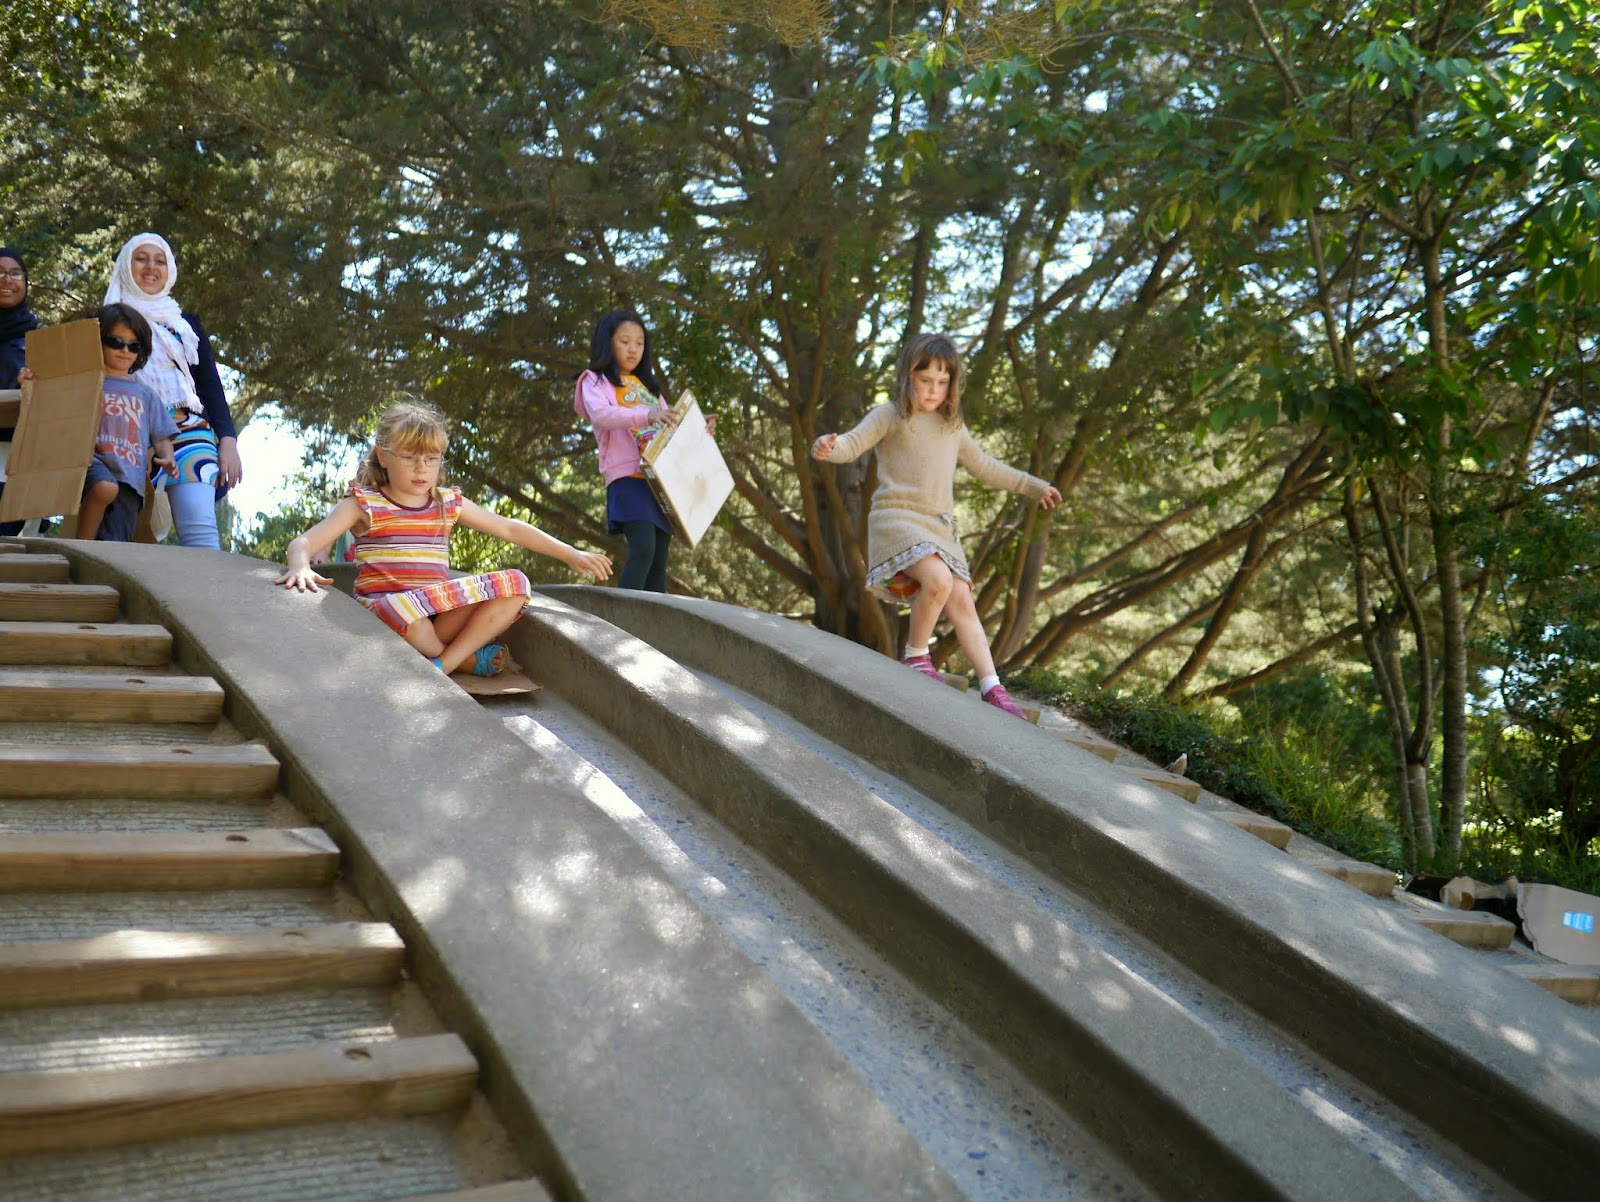 and the concrete slides